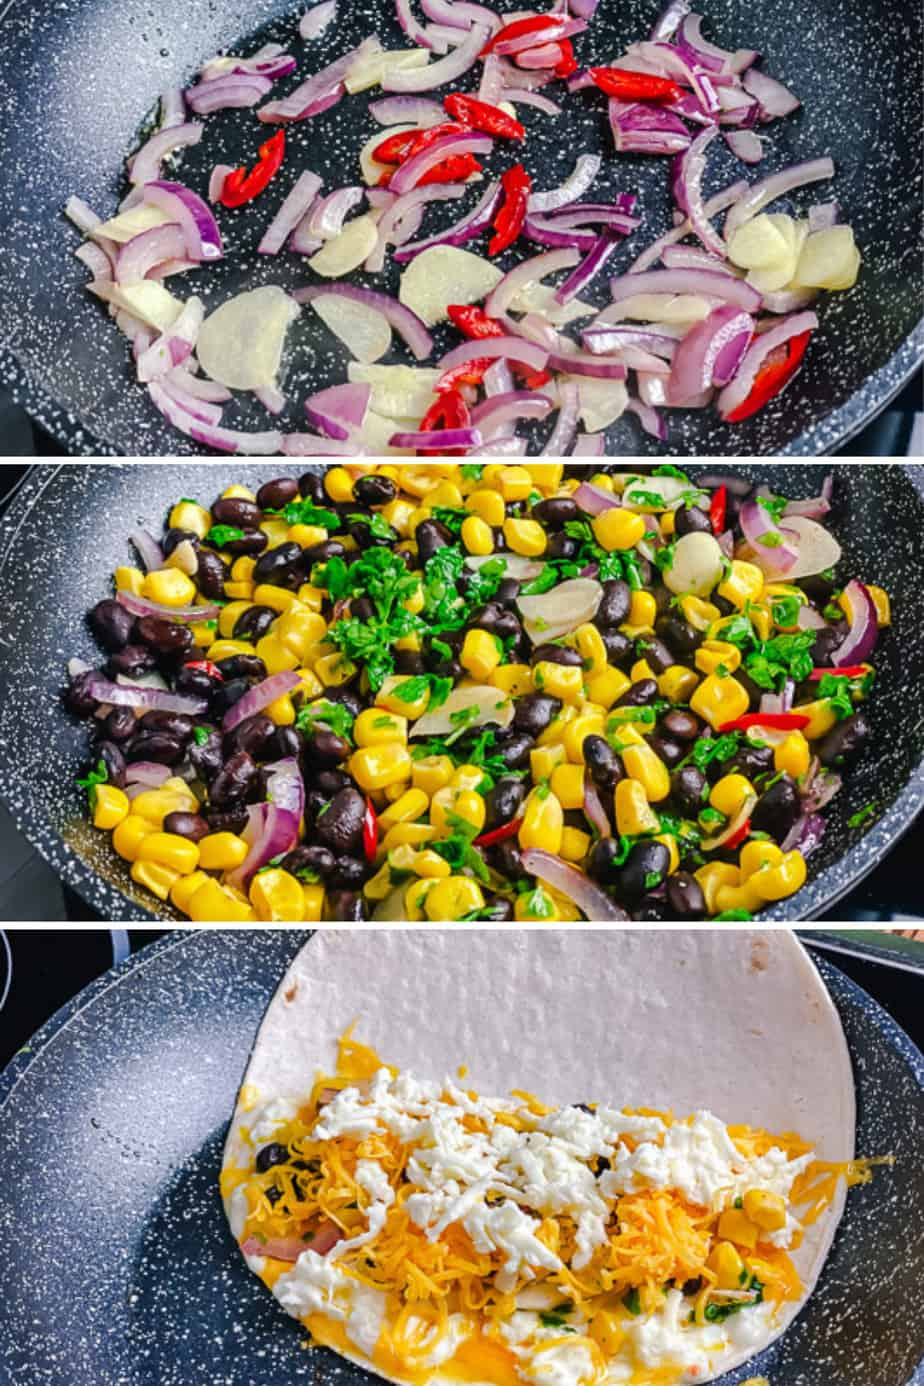 These Mexican Quesadillas are loaded with black beans, sweet corn, and two kinds of gooey melted cheese. Soft tortillas are then lightly toasted on a skillet until crisp. You'll love this recipe as they make a great hearty lunch or easy dinner in just under 30 minutes.